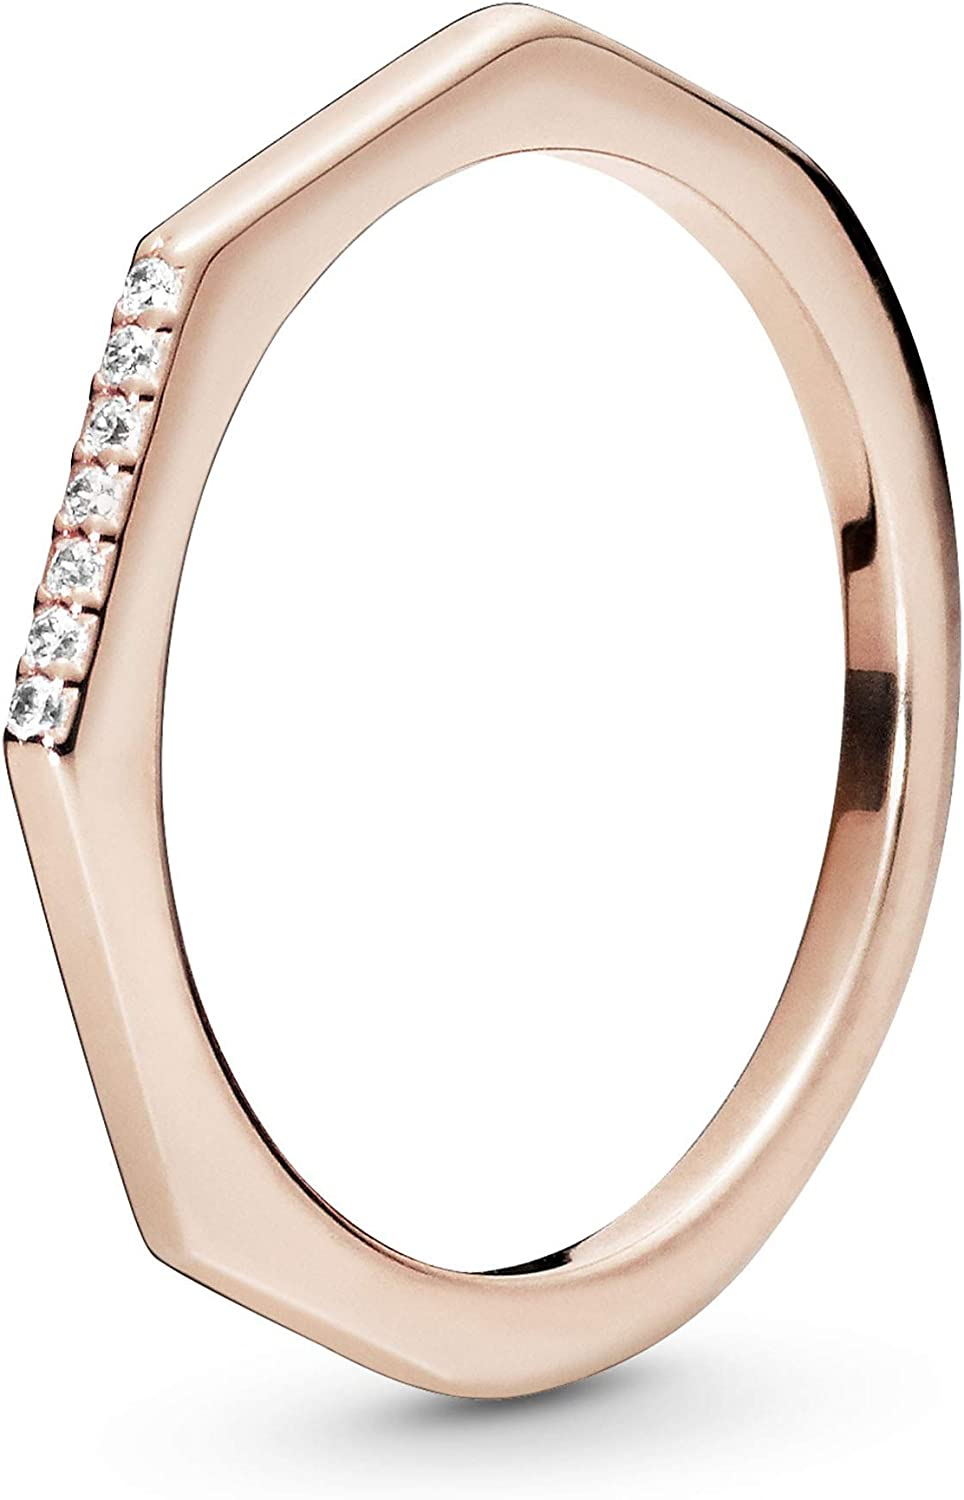 Outlet ☆ Free Shipping Gifts Pandora Jewelry Multifaceted Cubic in Rose Zirconia Ring